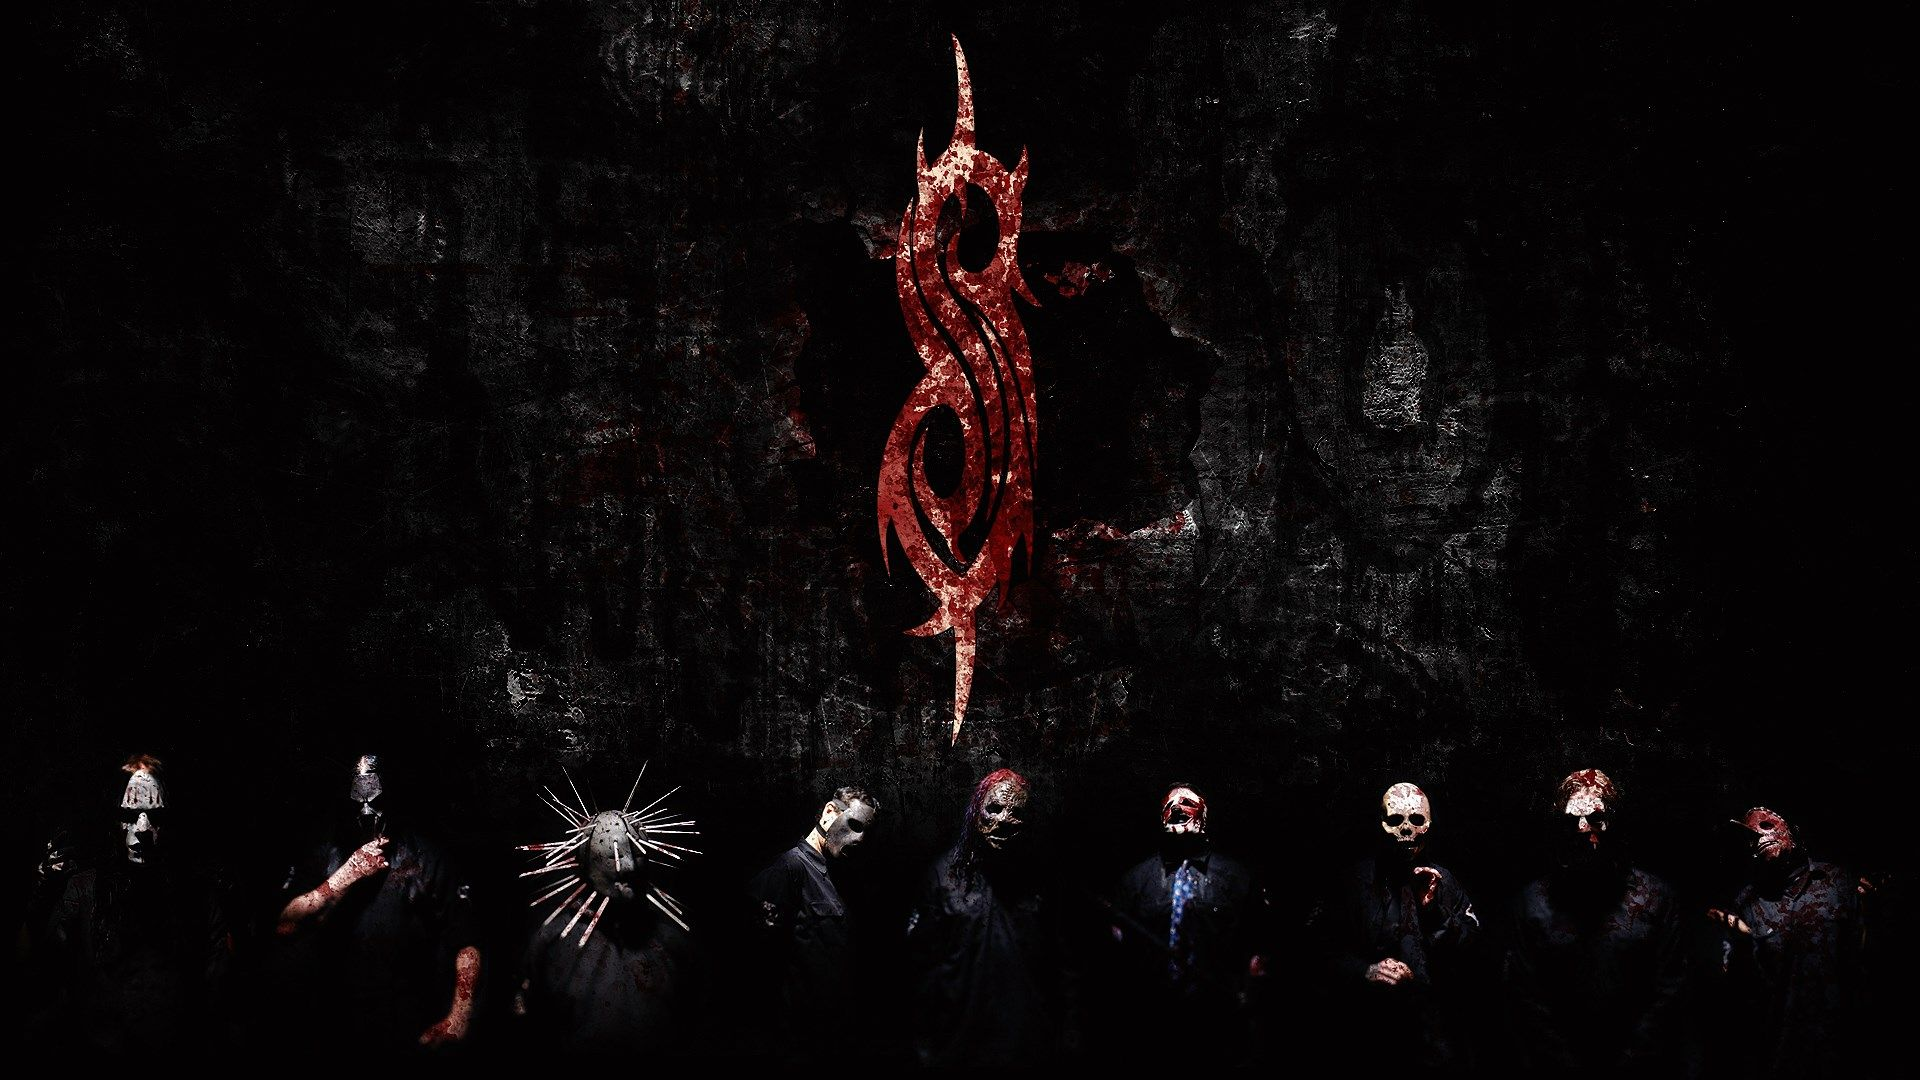 Ivory Round slipknot wallpaper Full HD Wallpapers